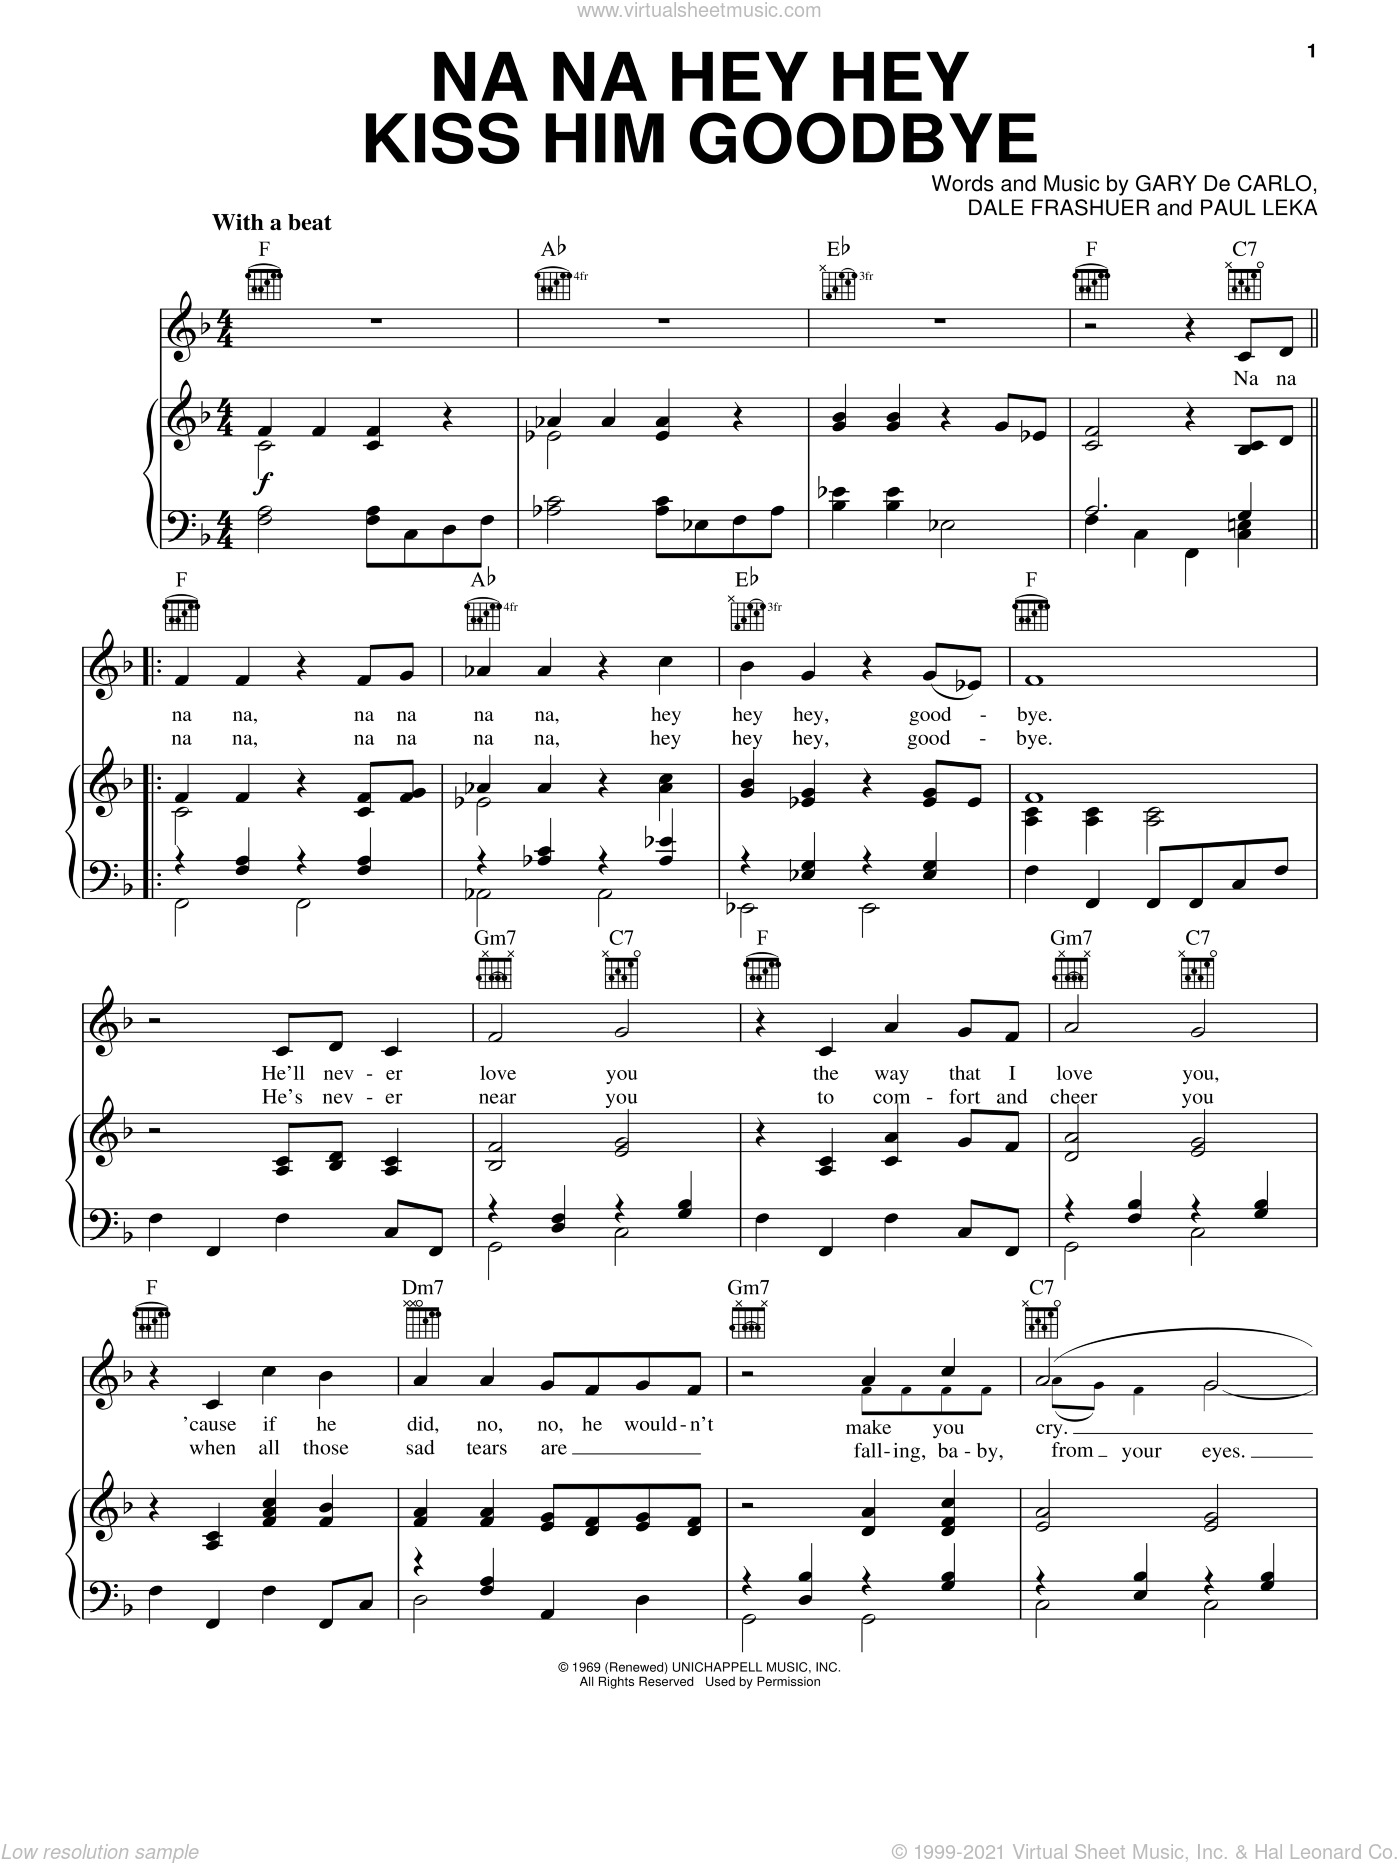 Na Na Hey Hey Kiss Him Goodbye sheet music for voice, piano or guitar by Steam, Arthur Frashuer Dale, Gary Carla and Paul Leka, intermediate skill level